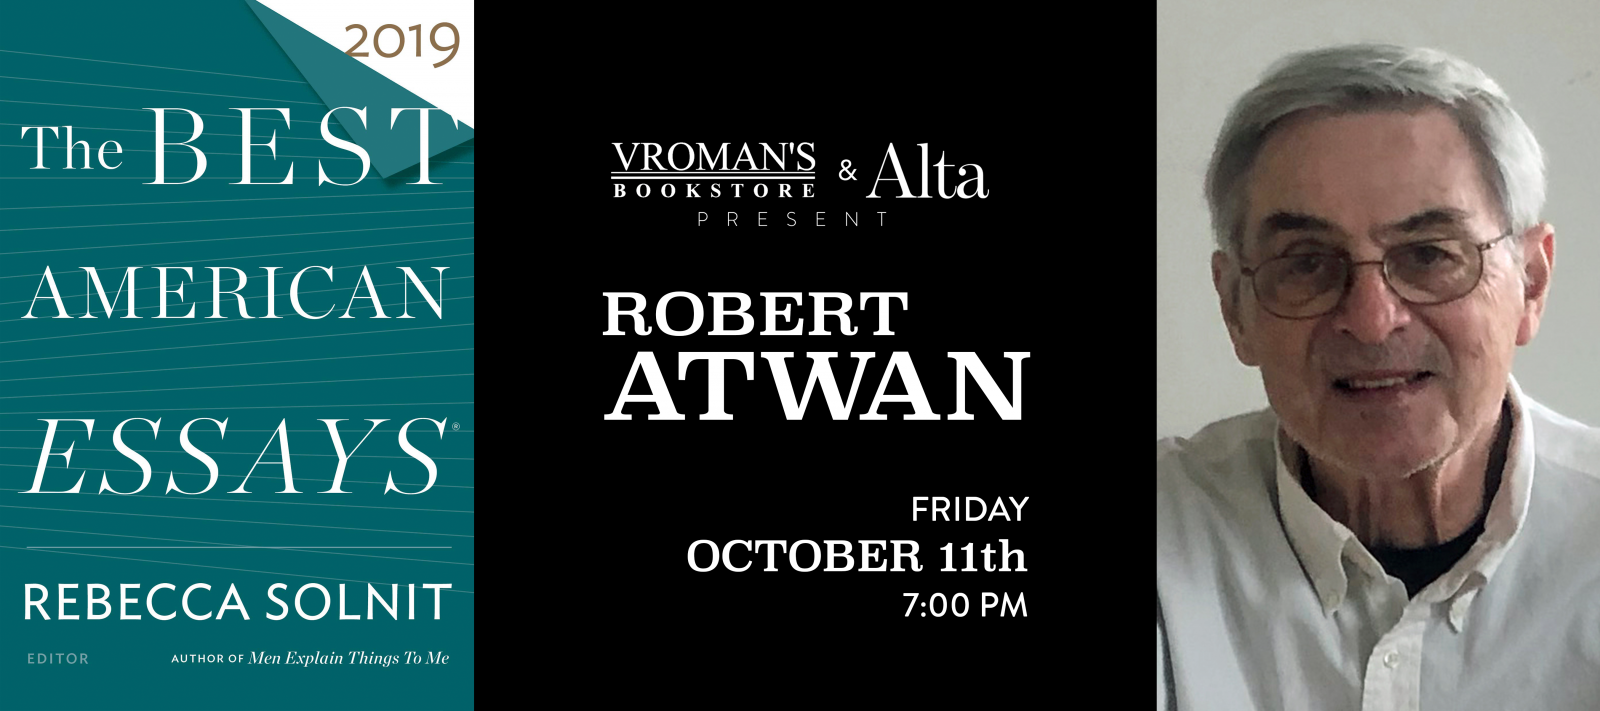 Robert Atwan book signing Friday October 11 at 7pm